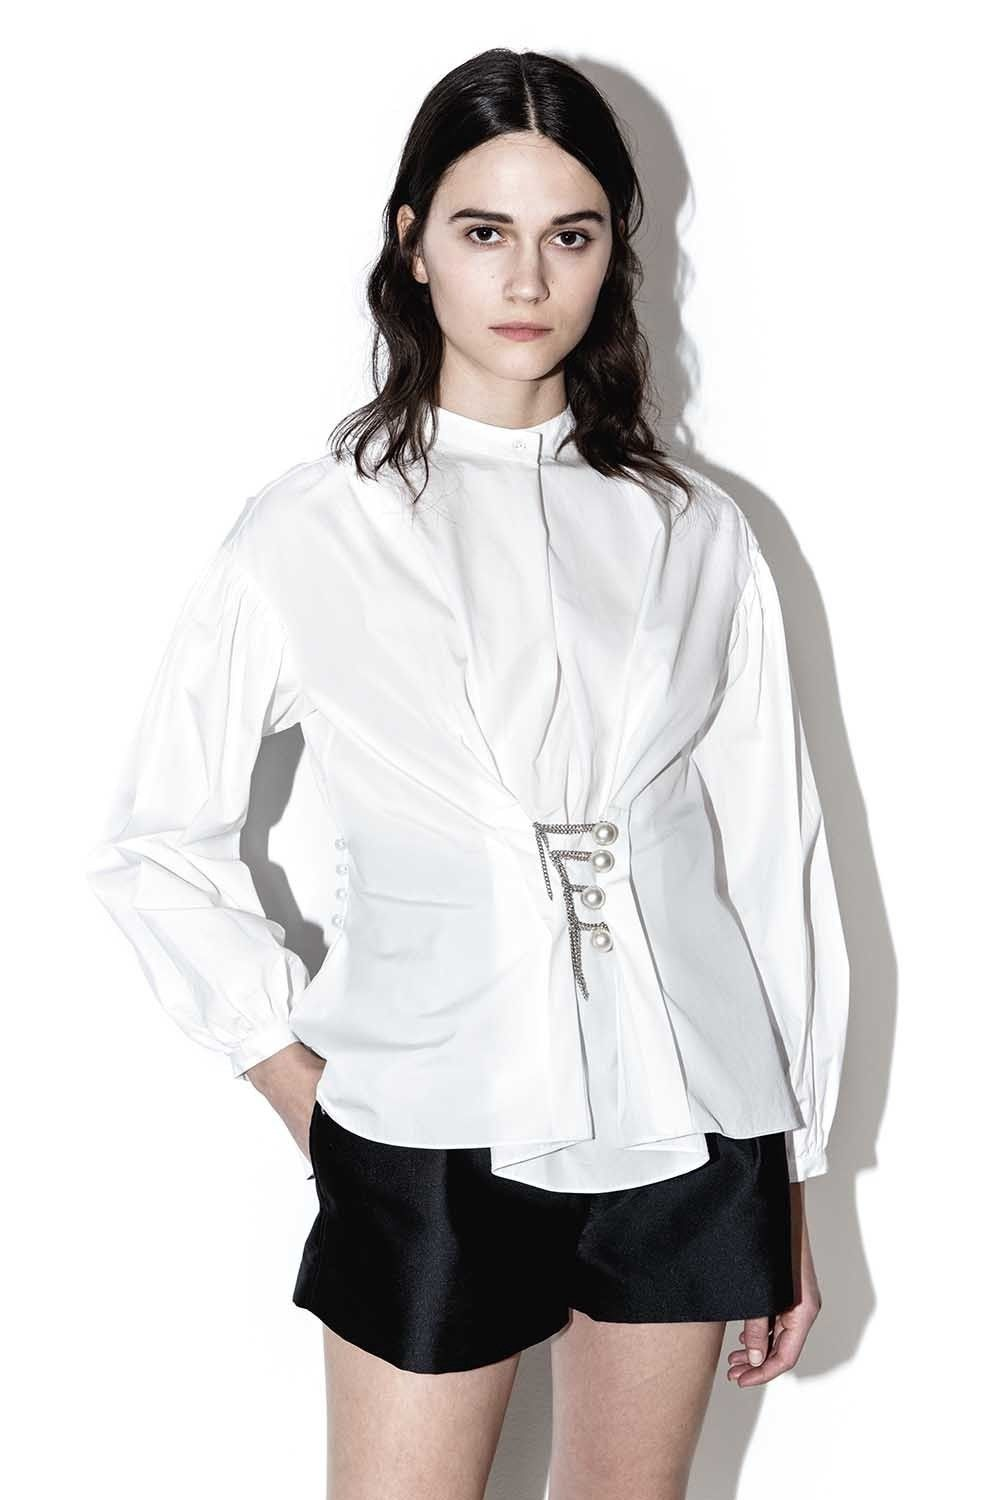 f1aa6f40904e6 3.1 PHILLIP LIM Draped blouse with pearl chains - White.  3.1philliplim   cloth